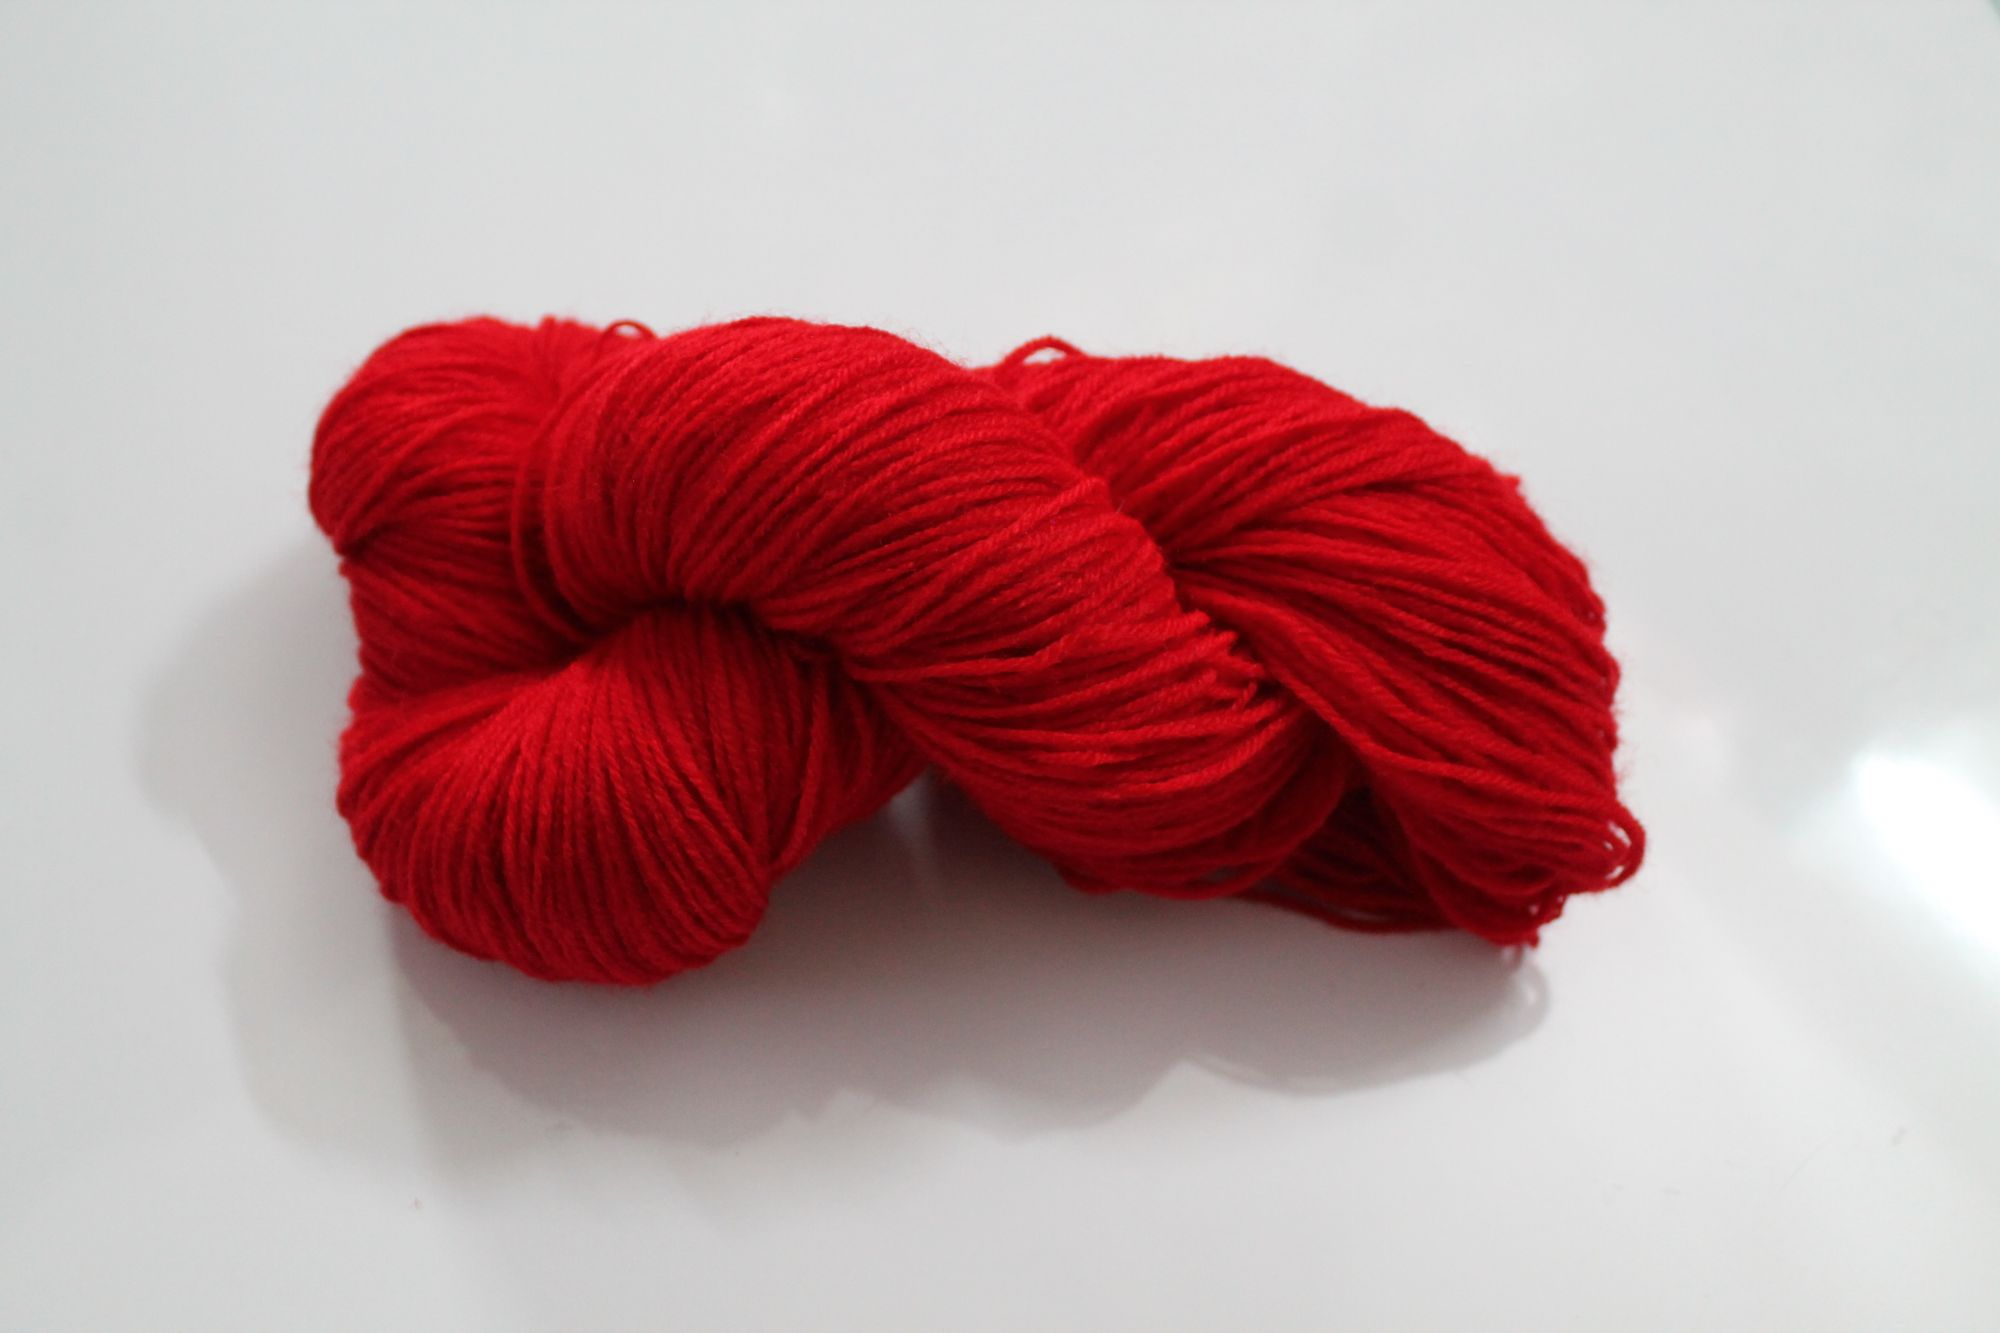 Oswal  Knitplus 4 Ply Acrylic Woolen Yarn - Red